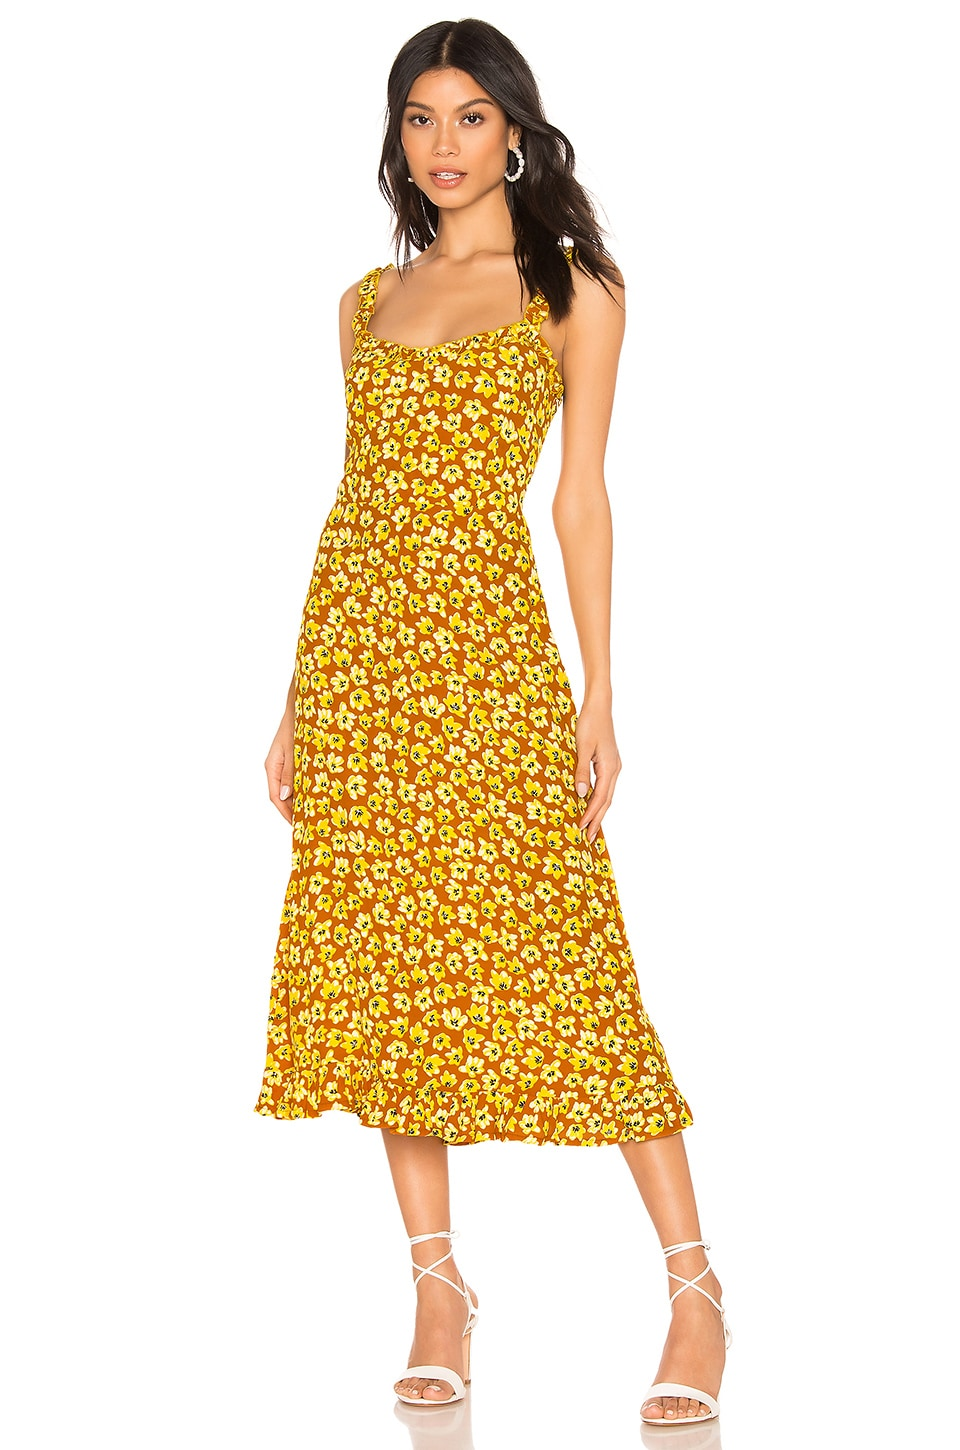 FAITHFULL THE BRAND Noemie Dress in Saffron Thelma Floral